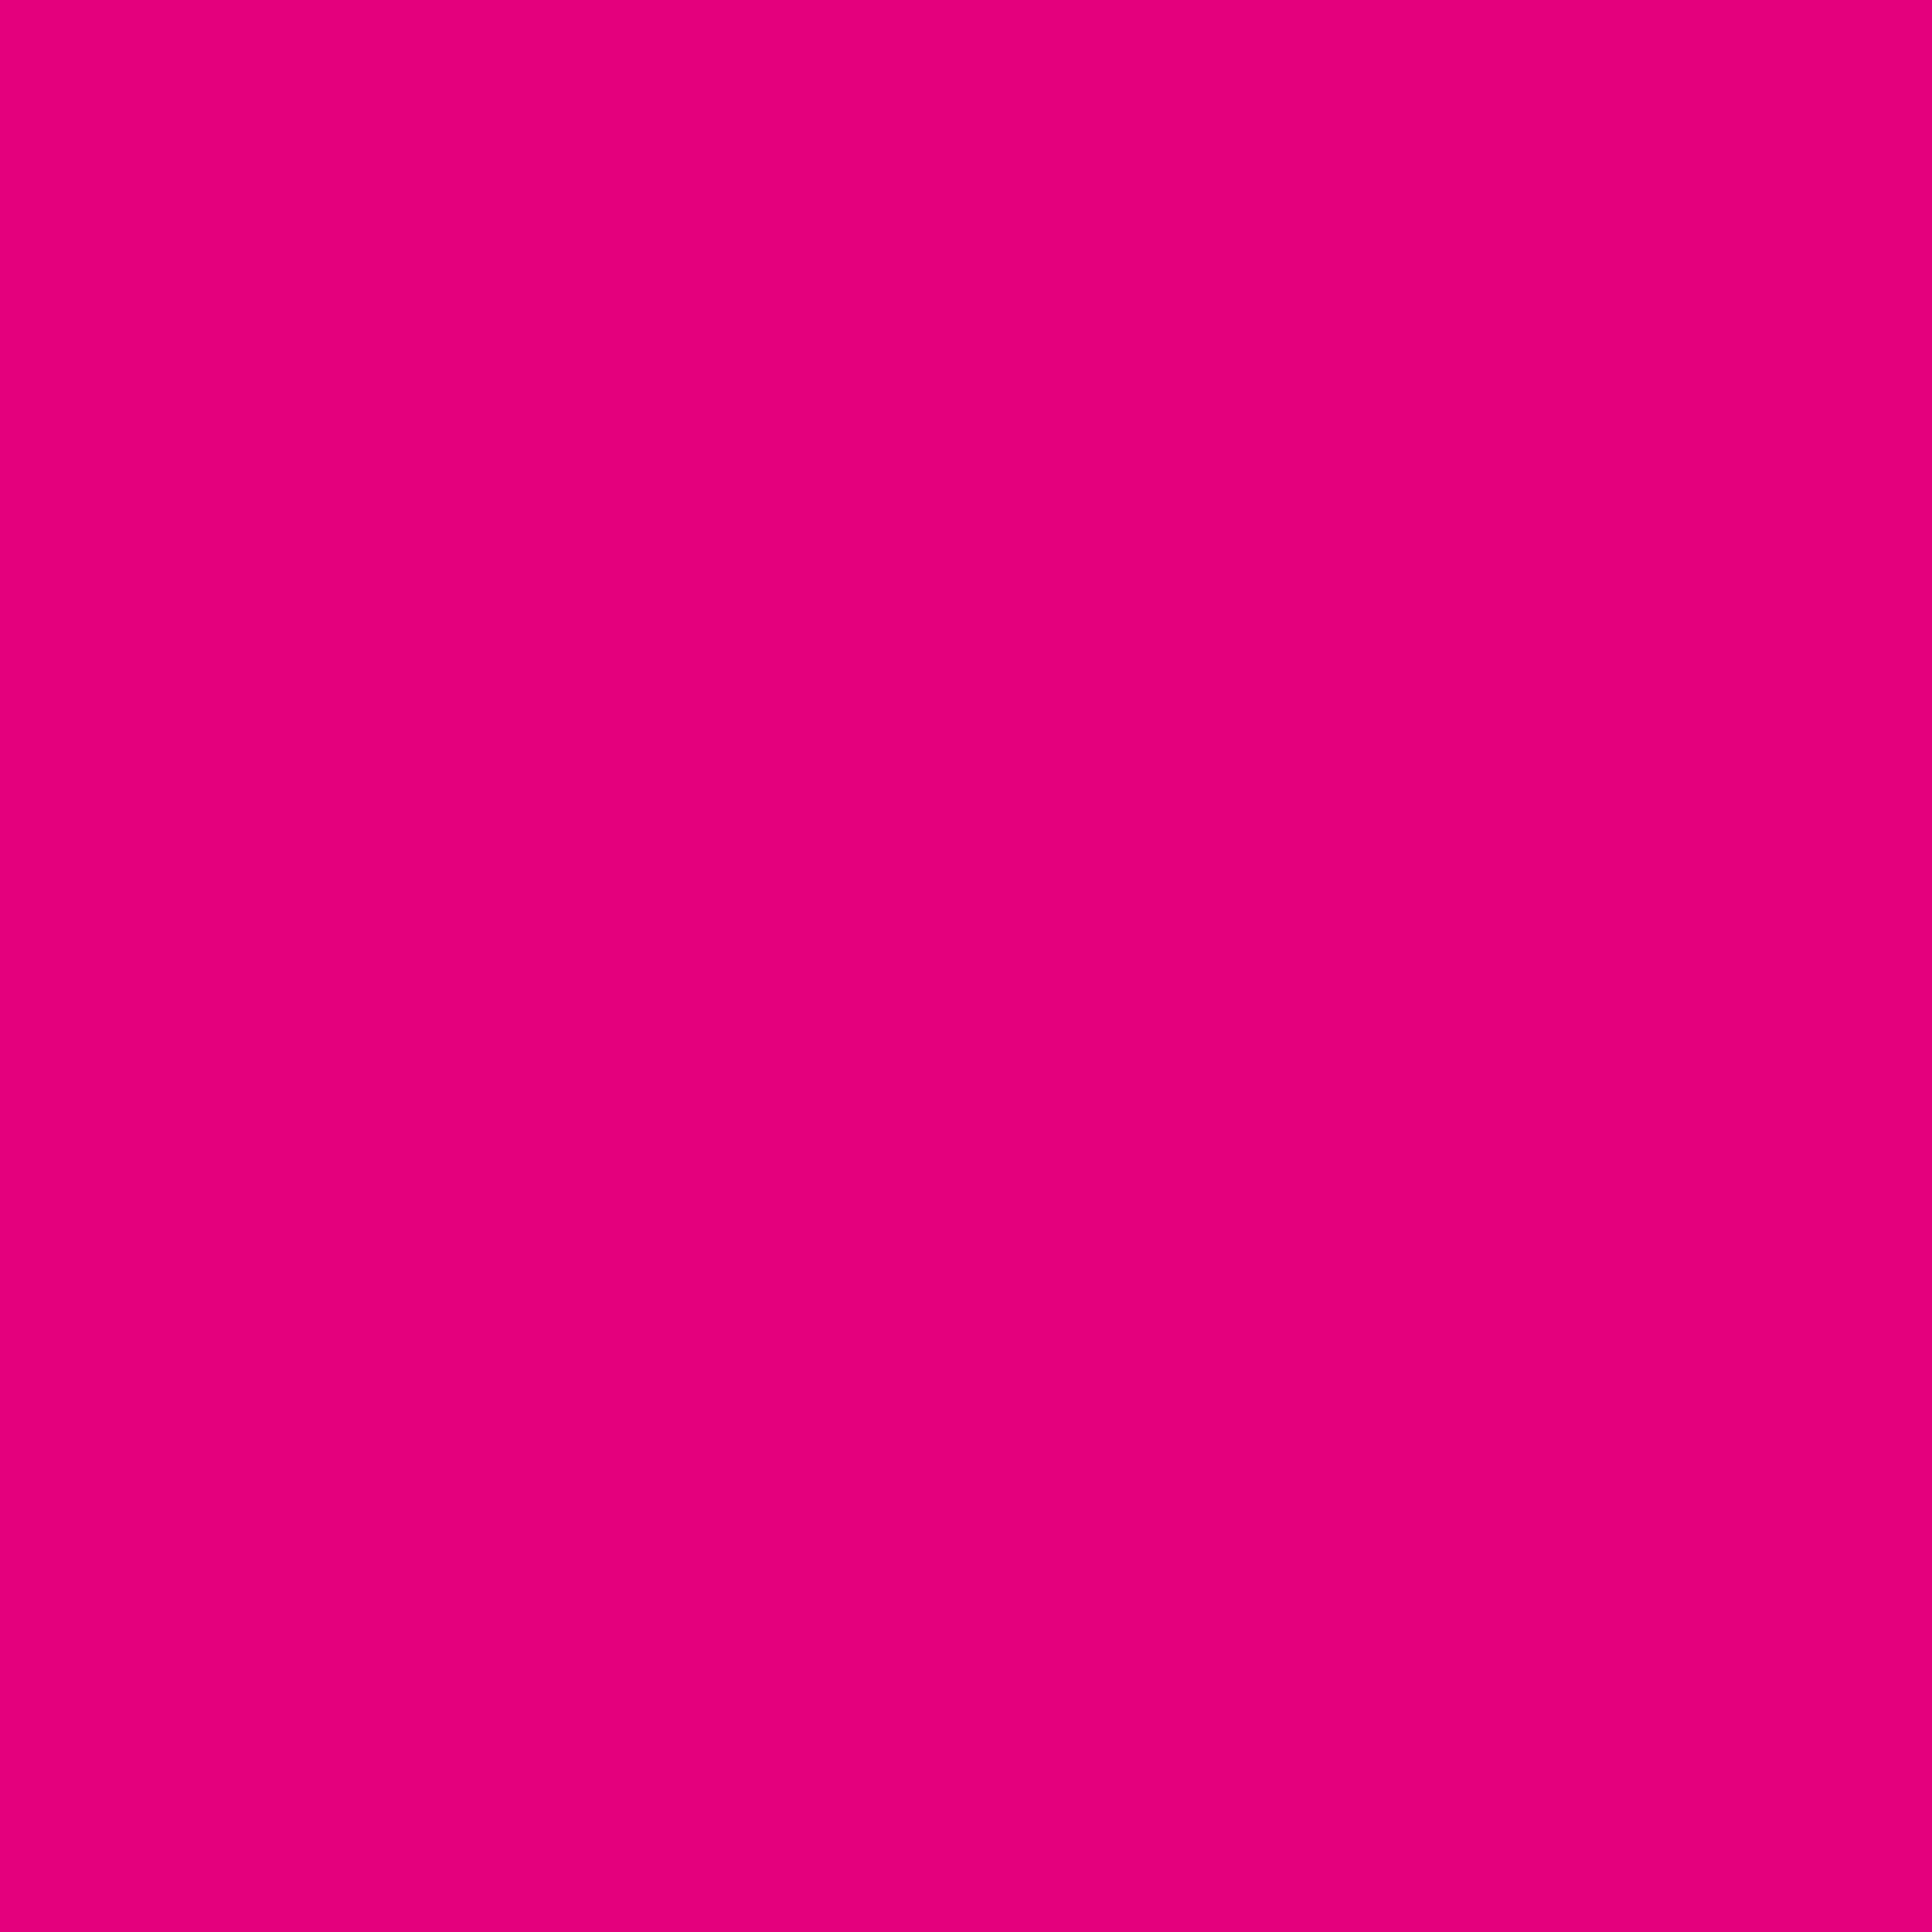 3600x3600 Mexican Pink Solid Color Background